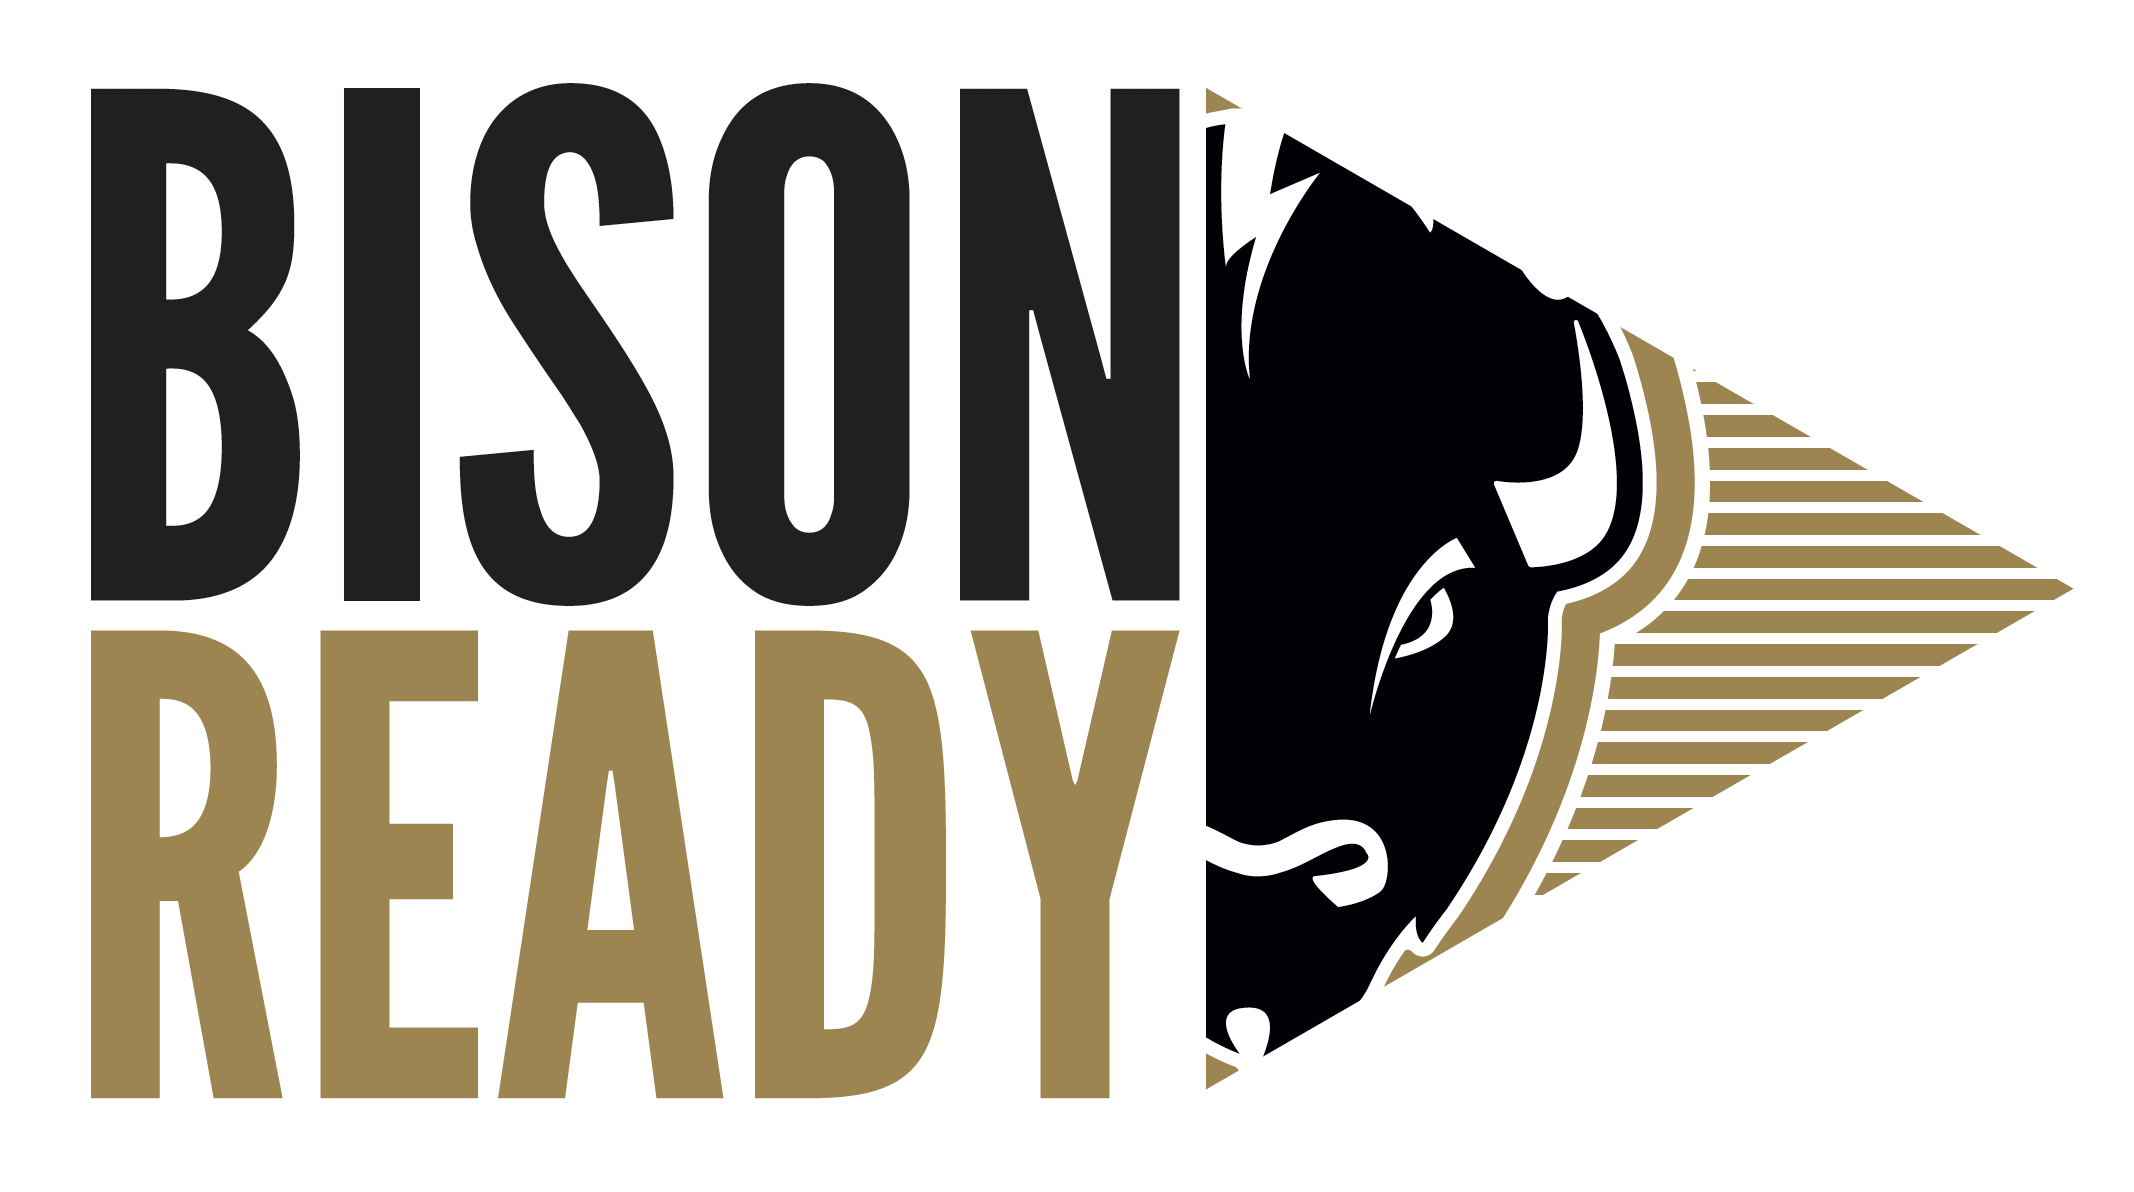 This is the logo for the Bison Ready program at Harding University.